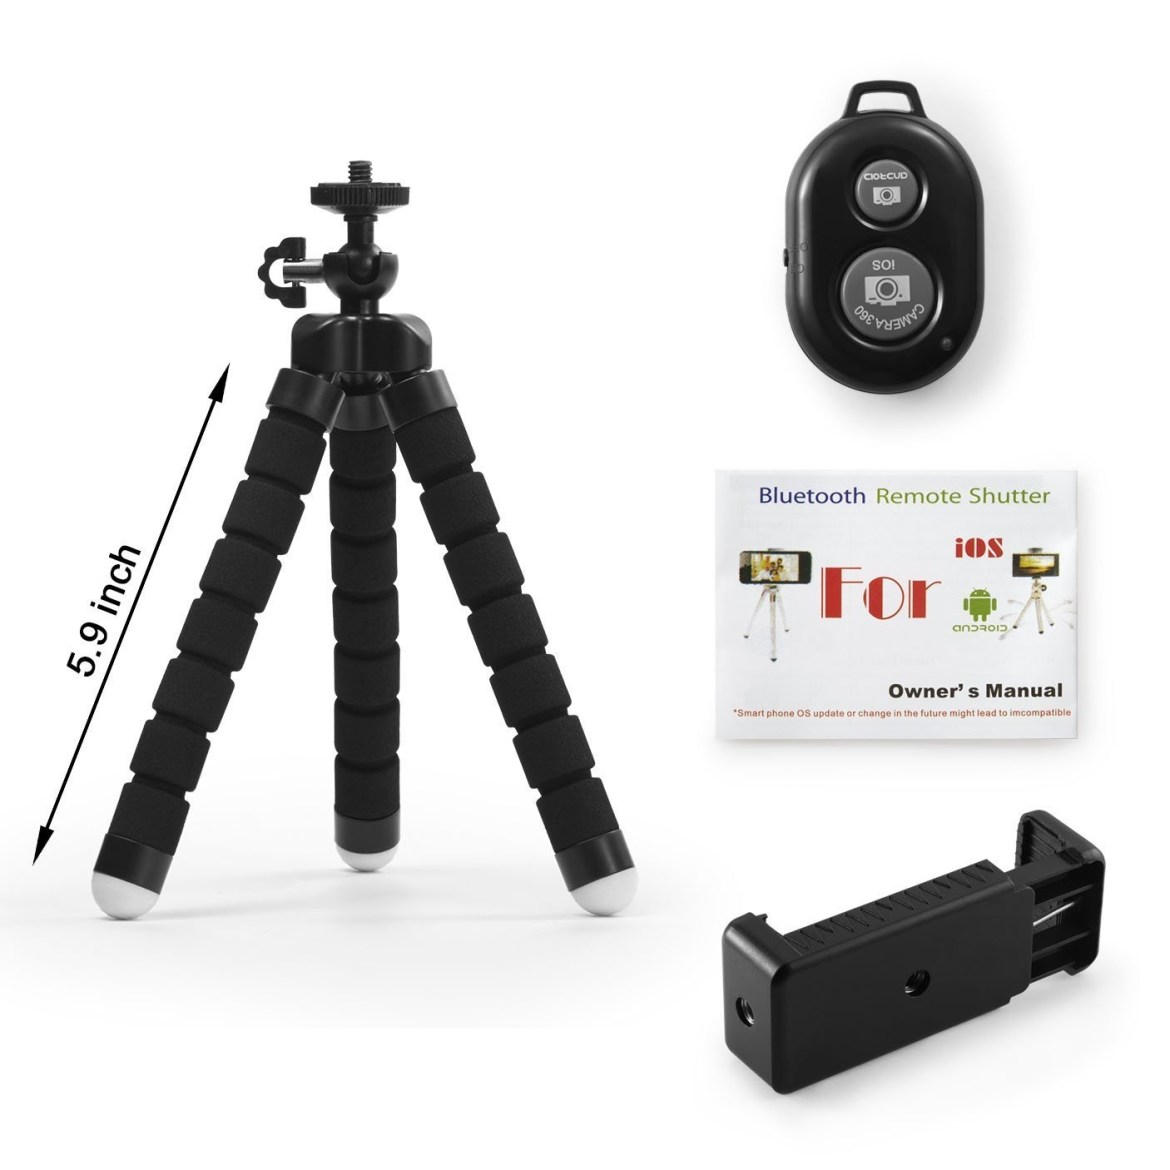 184b4561f6946cf16474a4906adeb91a Octopus Tripod Stand Holder Universal Clip & Remote For Smartphones & Camera   Black